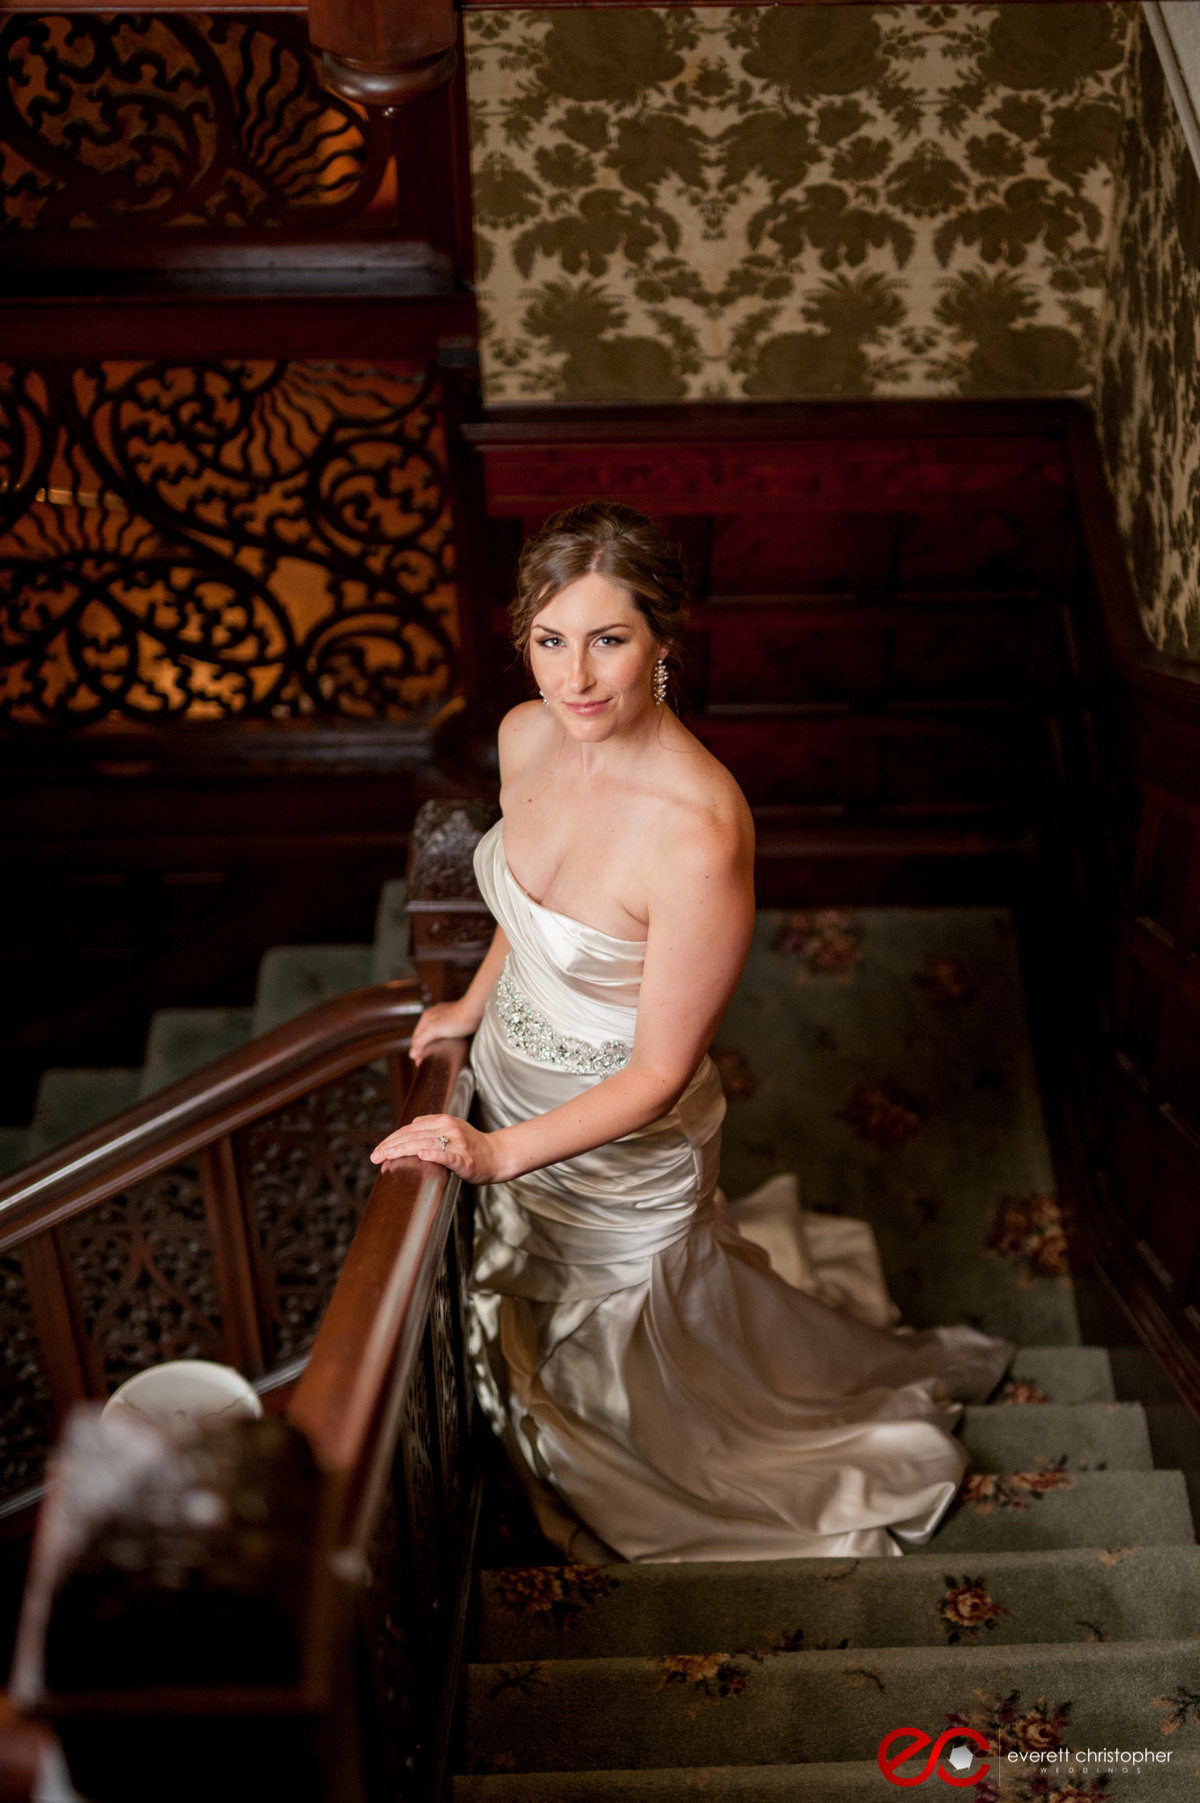 082915annie-bridals-D700-0047-Edit